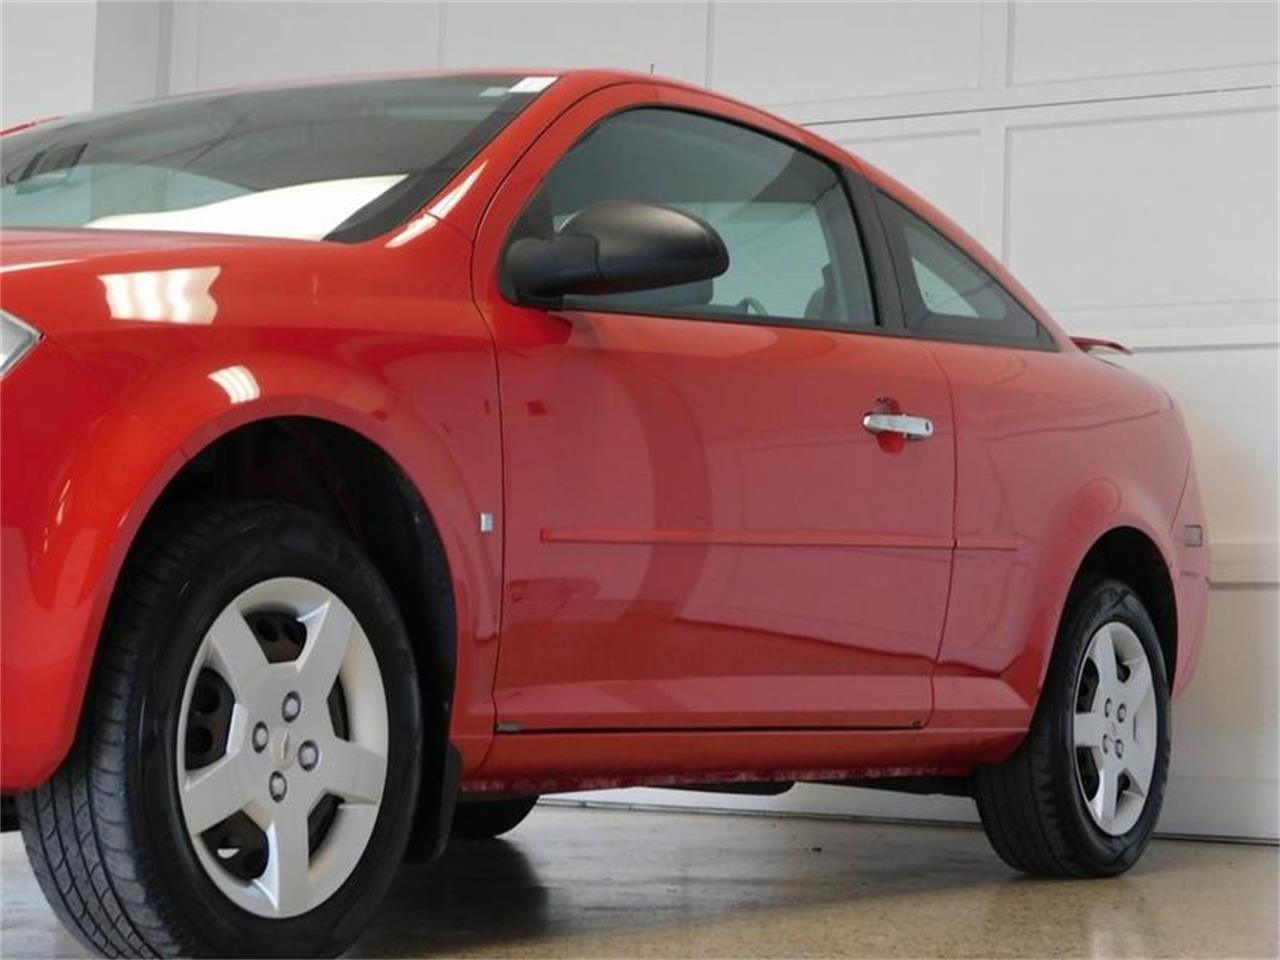 Large Picture of '07 Chevrolet Cobalt - $3,999.00 Offered by Superior Auto Sales - QEMW